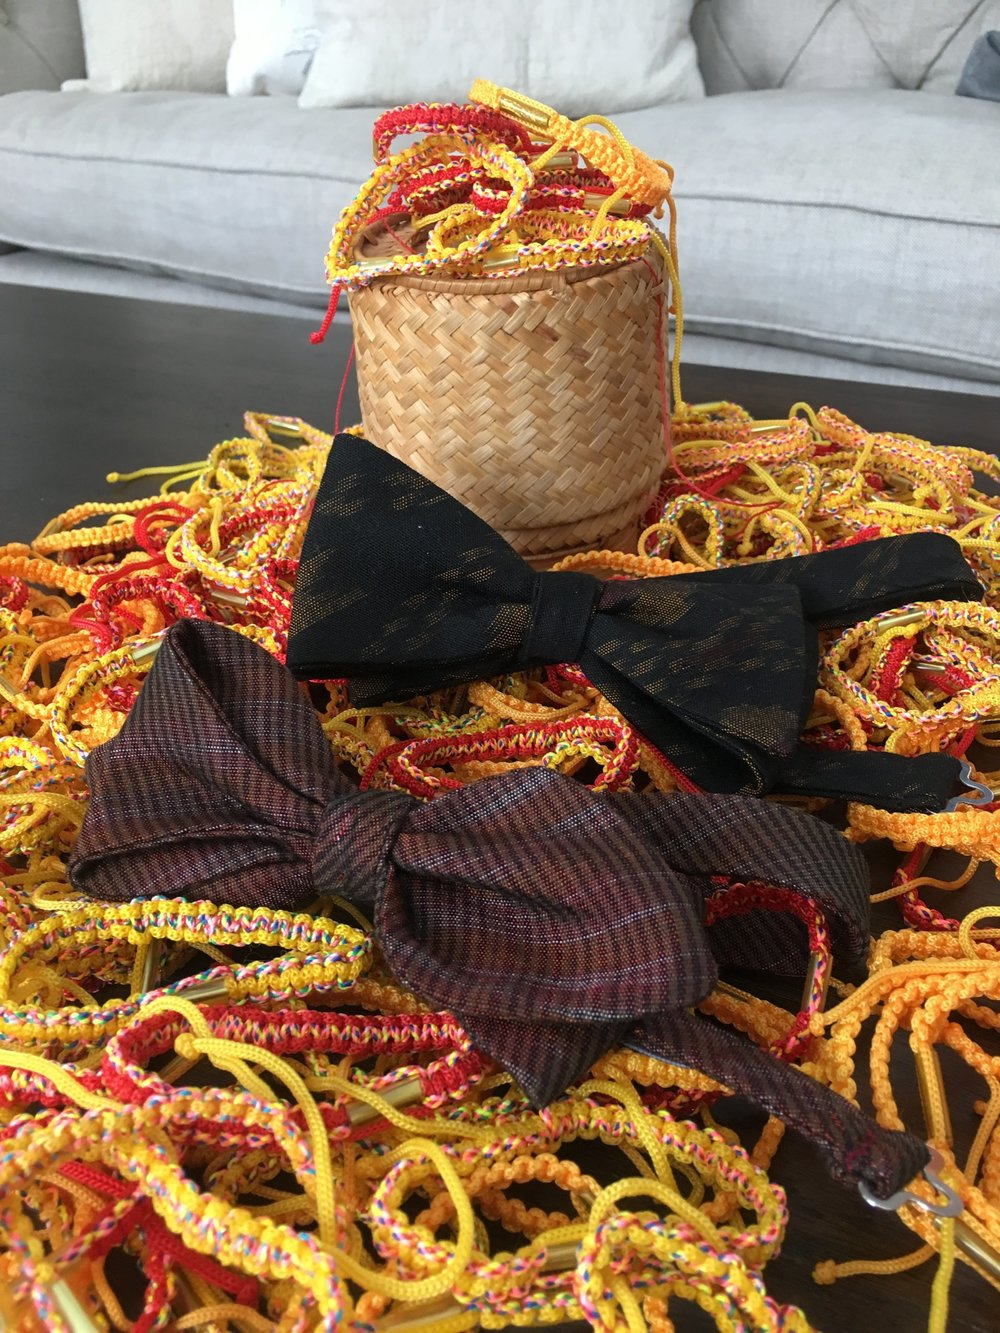 Bow ties repurposed from traditional Lao women's textiles